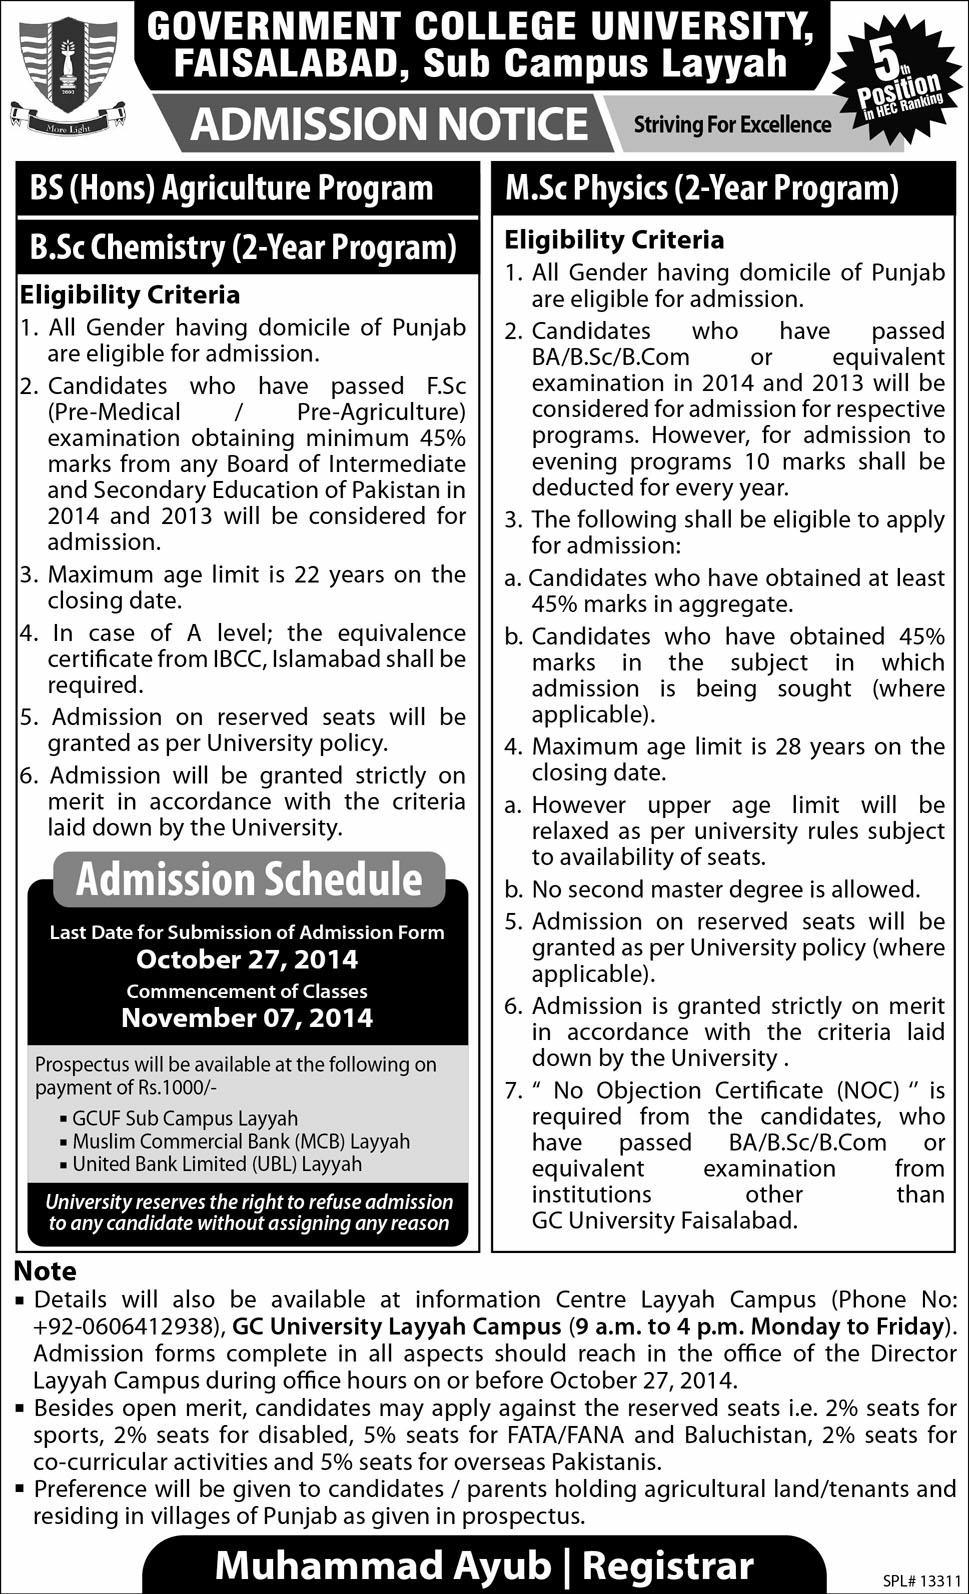 GC University Faisalabad Layyah Campus admissions in BS Hons